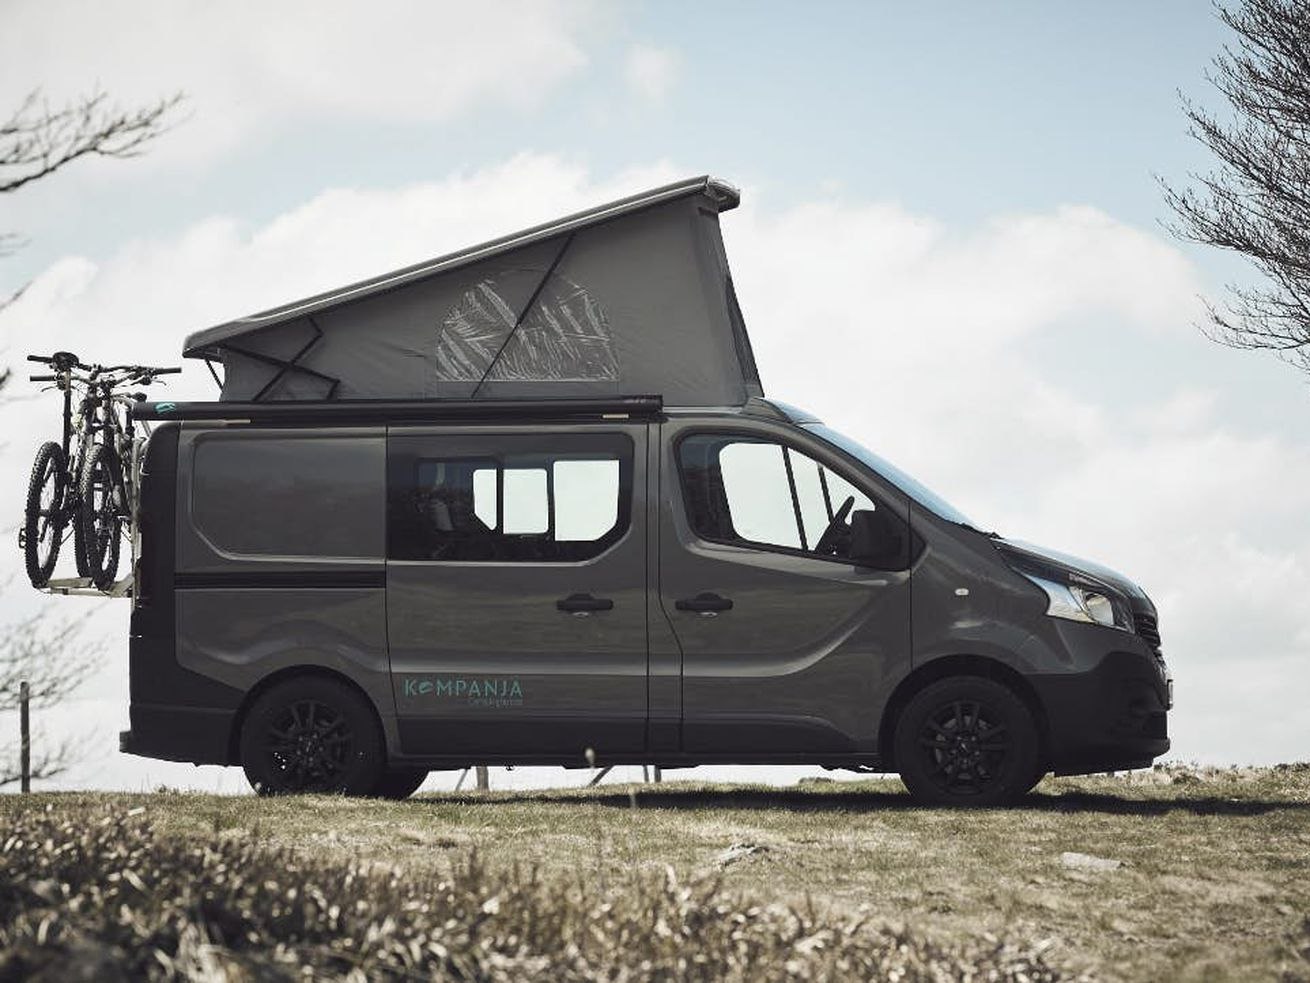 The Kompanja out of Germany can sleep four people and also work as a daily driver, camper, or cargo van.